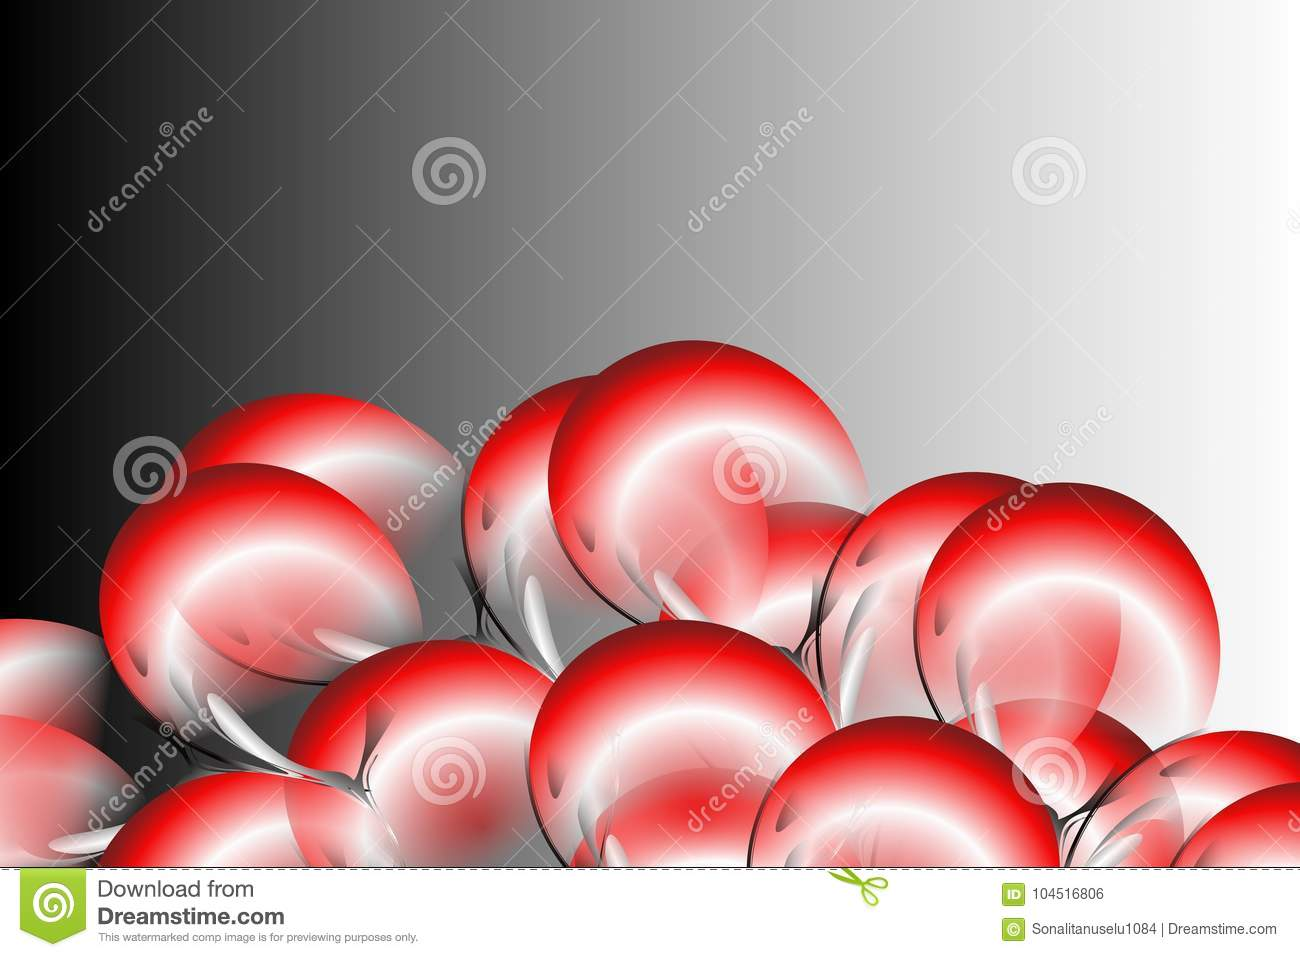 Abstract Vector Red Black And White Flowers Leaf With Black And Grey